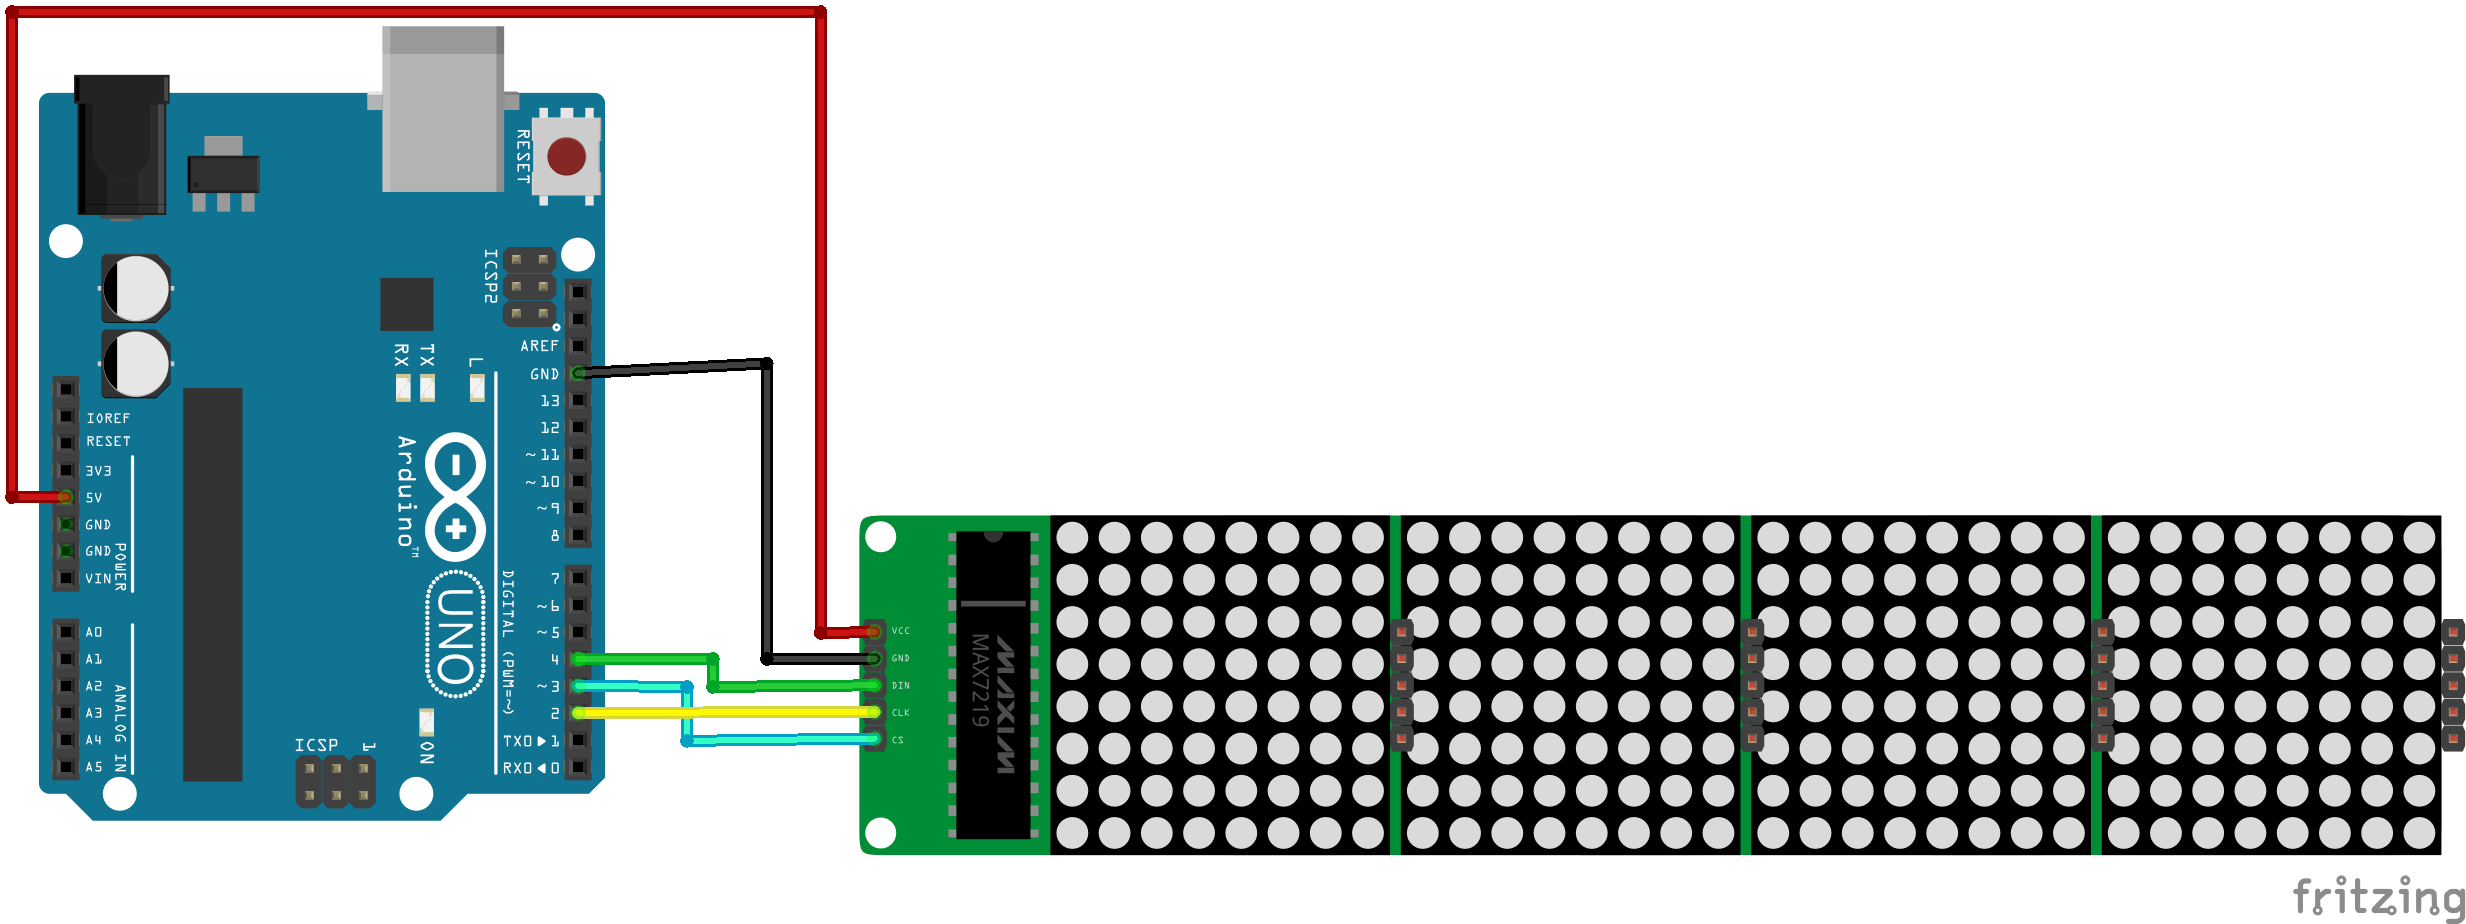 H. Diagram of connection of the module on the board.